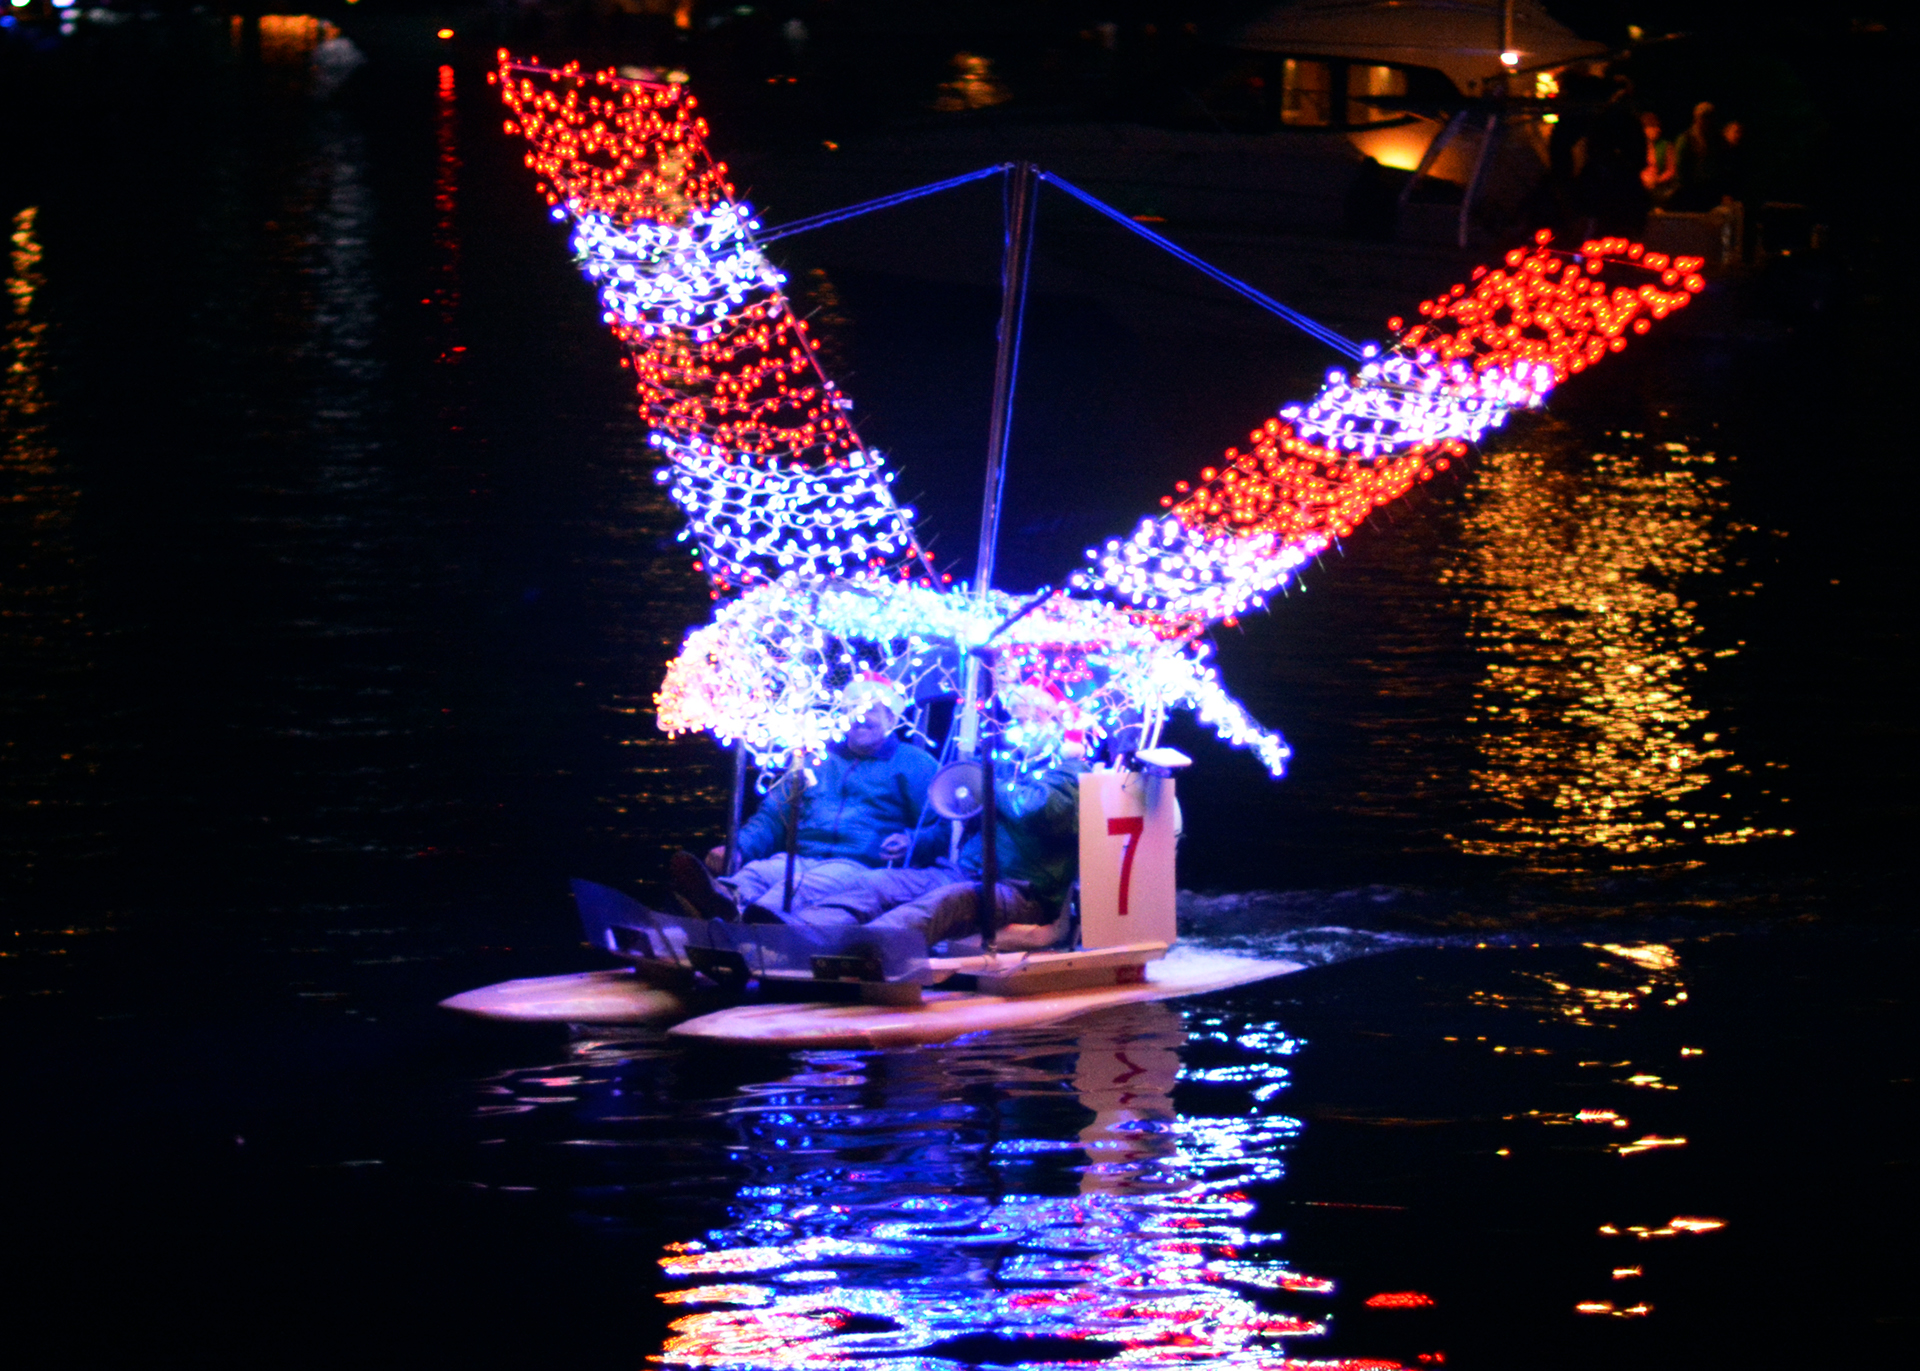 "<div class=""meta image-caption""><div class=""origin-logo origin-image none""><span>none</span></div><span class=""caption-text"">2017 NC Holiday Flotilla Best 22 ft and Under Award winner (Credit: Beth W. Hedgepeth)</span></div>"